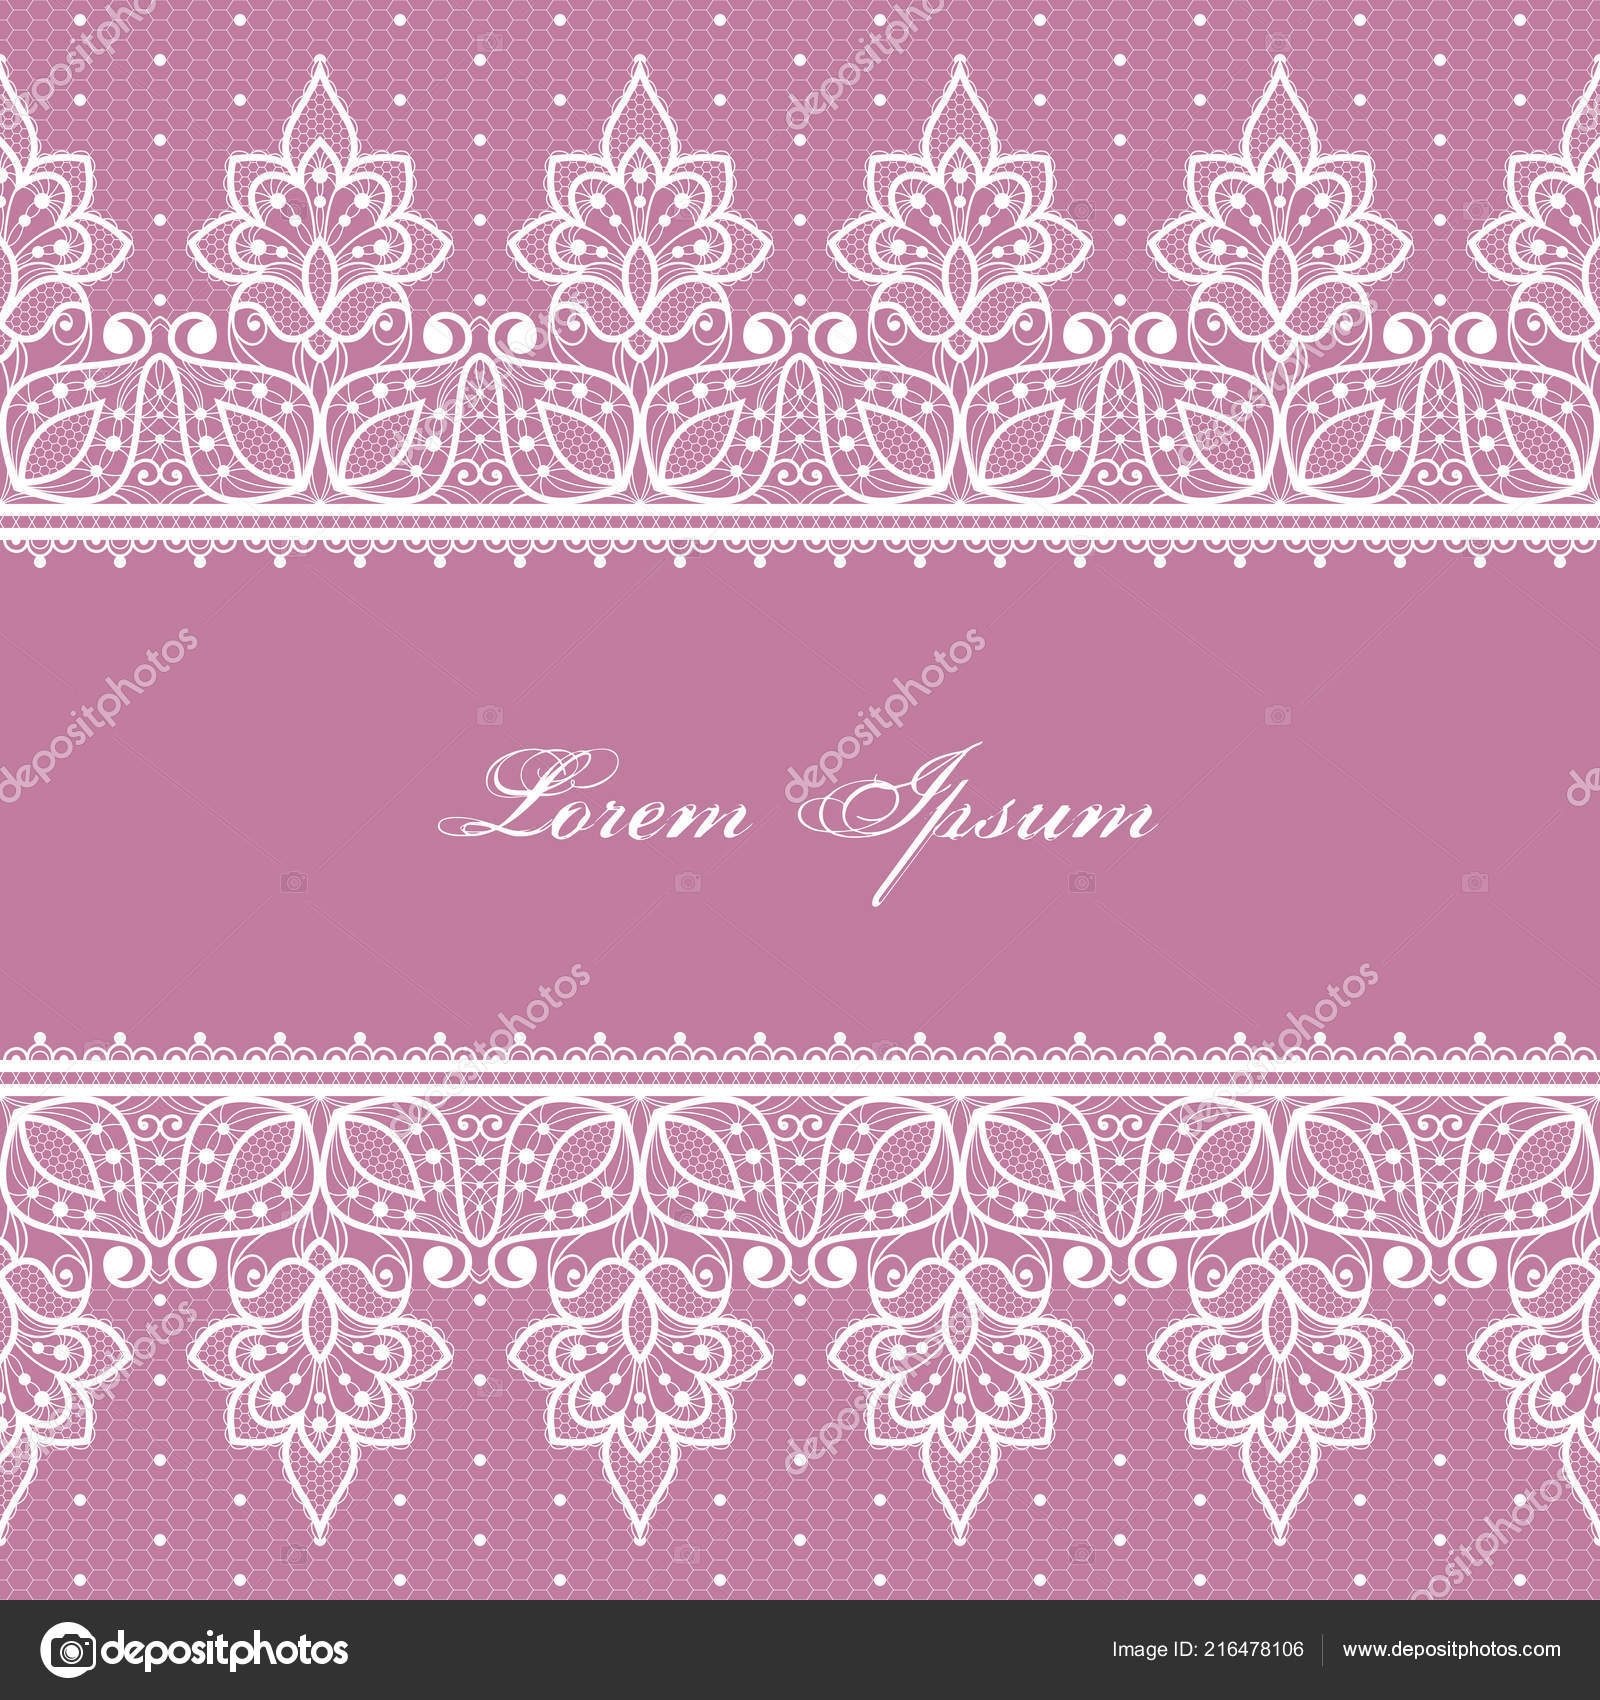 Wedding Card Invitation Template Filigree Lace Floral Pattern